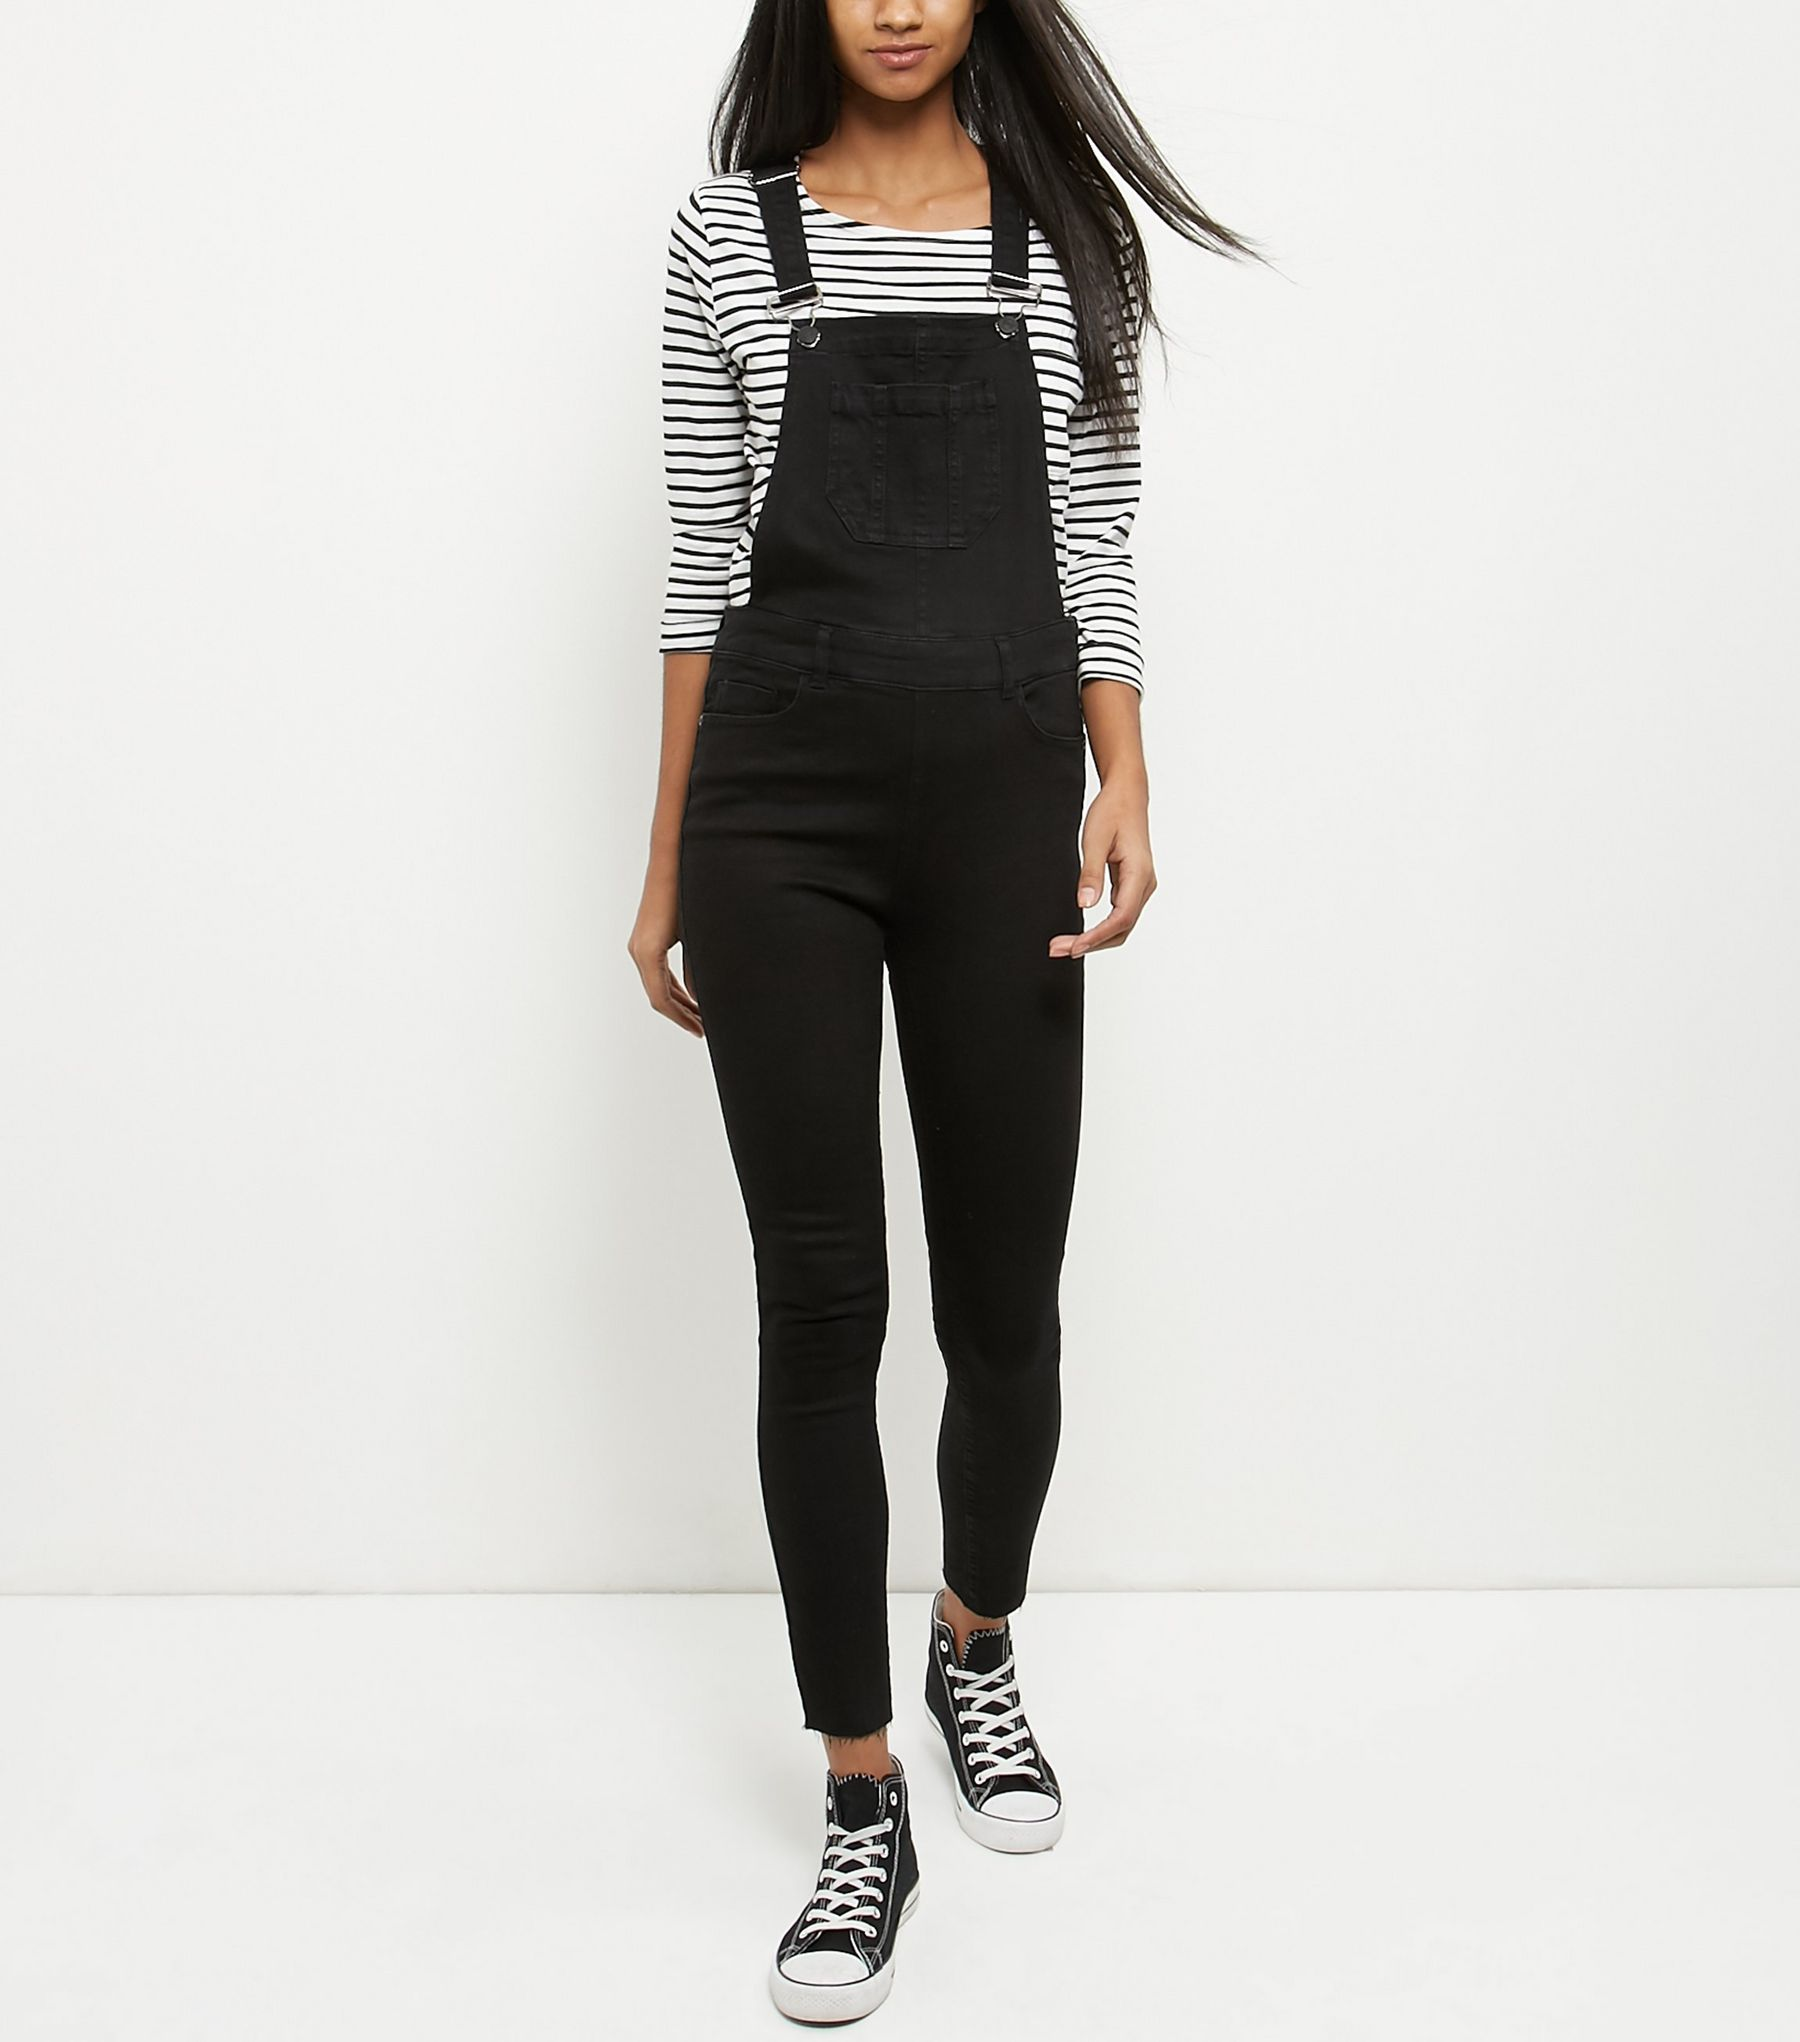 Summer Style: Dungarees